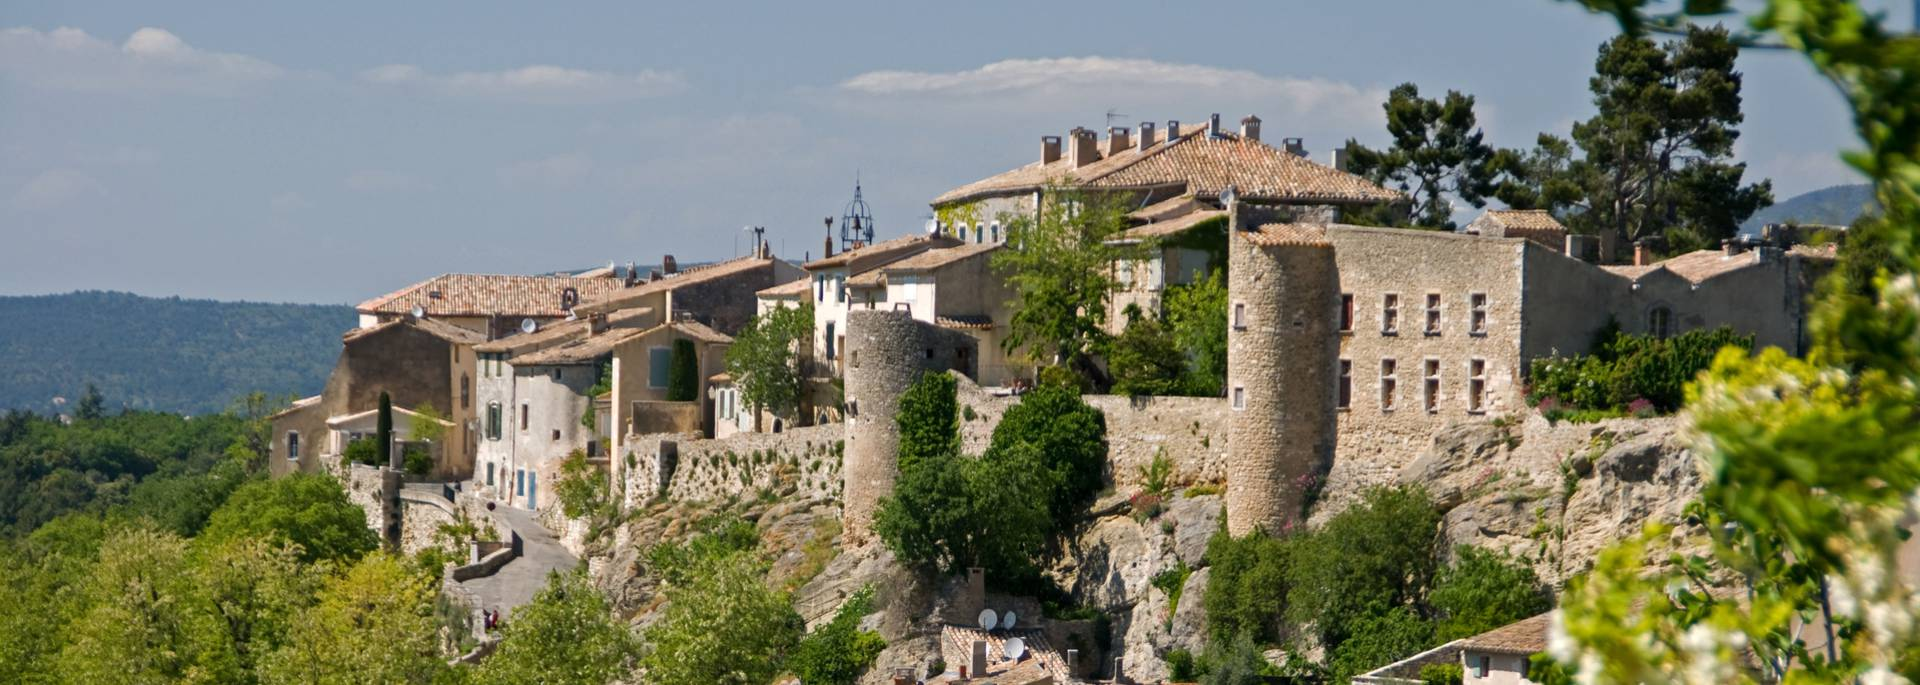 Ménerbes | Village perché du Luberon |Plus beaux village de France